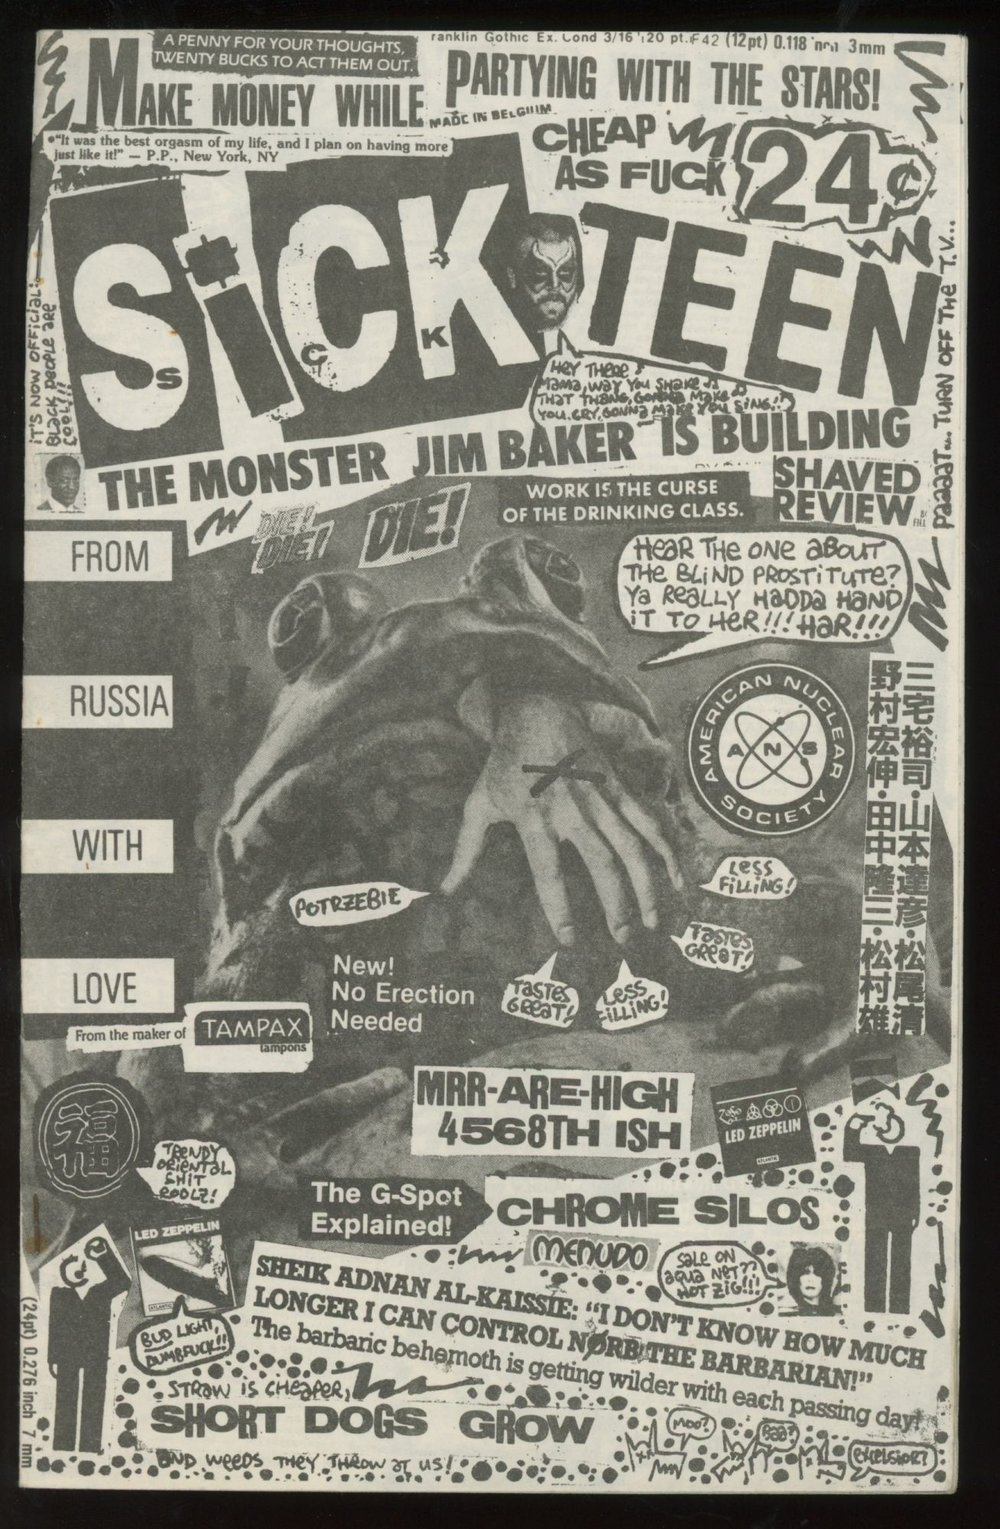 An issue of Sick Teenfrom 1986. Green Bay, WI:Geek & Destroy Graphics,[1986]. 8vo, saddle-stapled wraps.